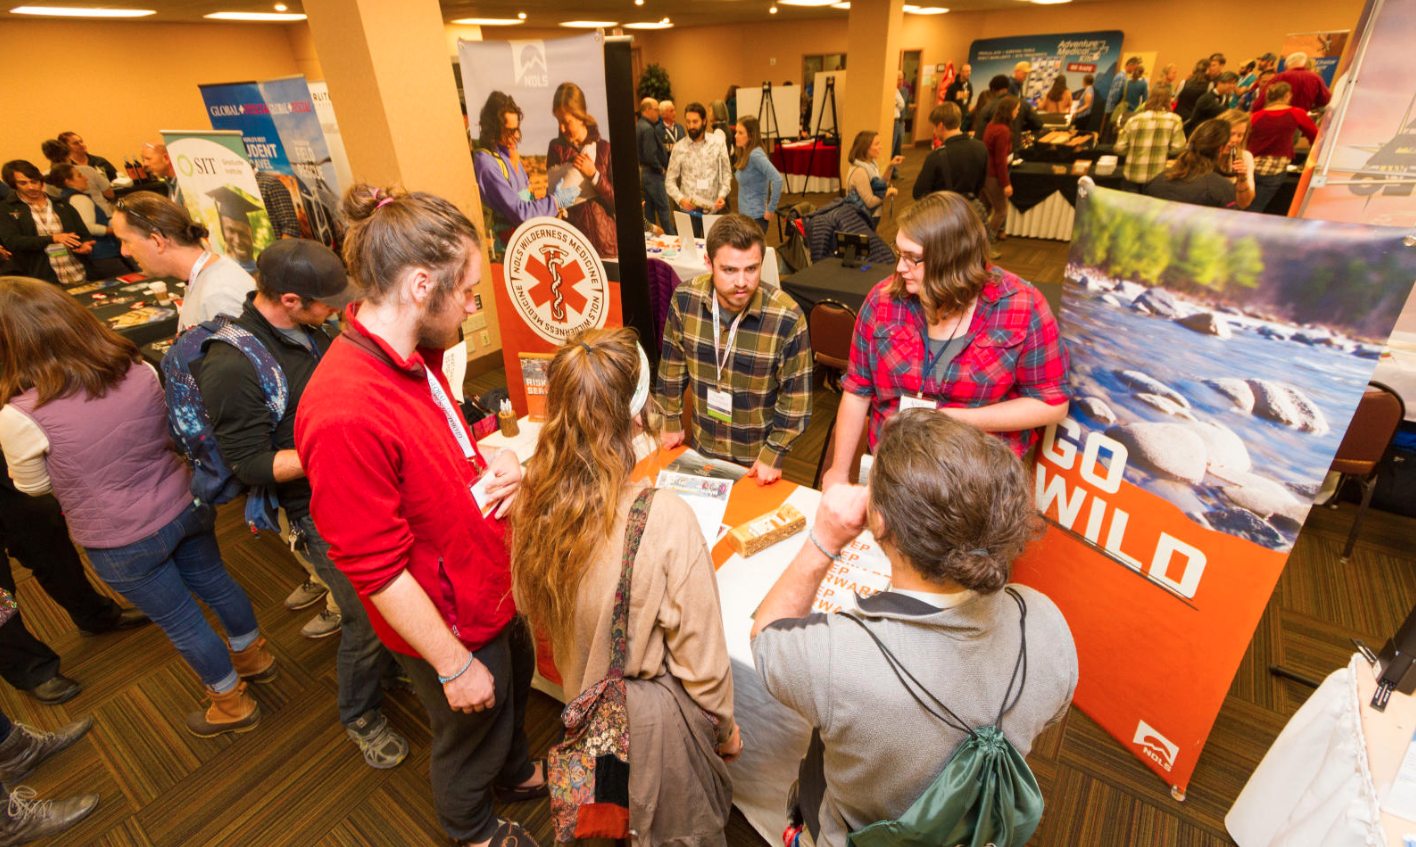 Attendees at 2017 WRMC NOLS exhibitor booth